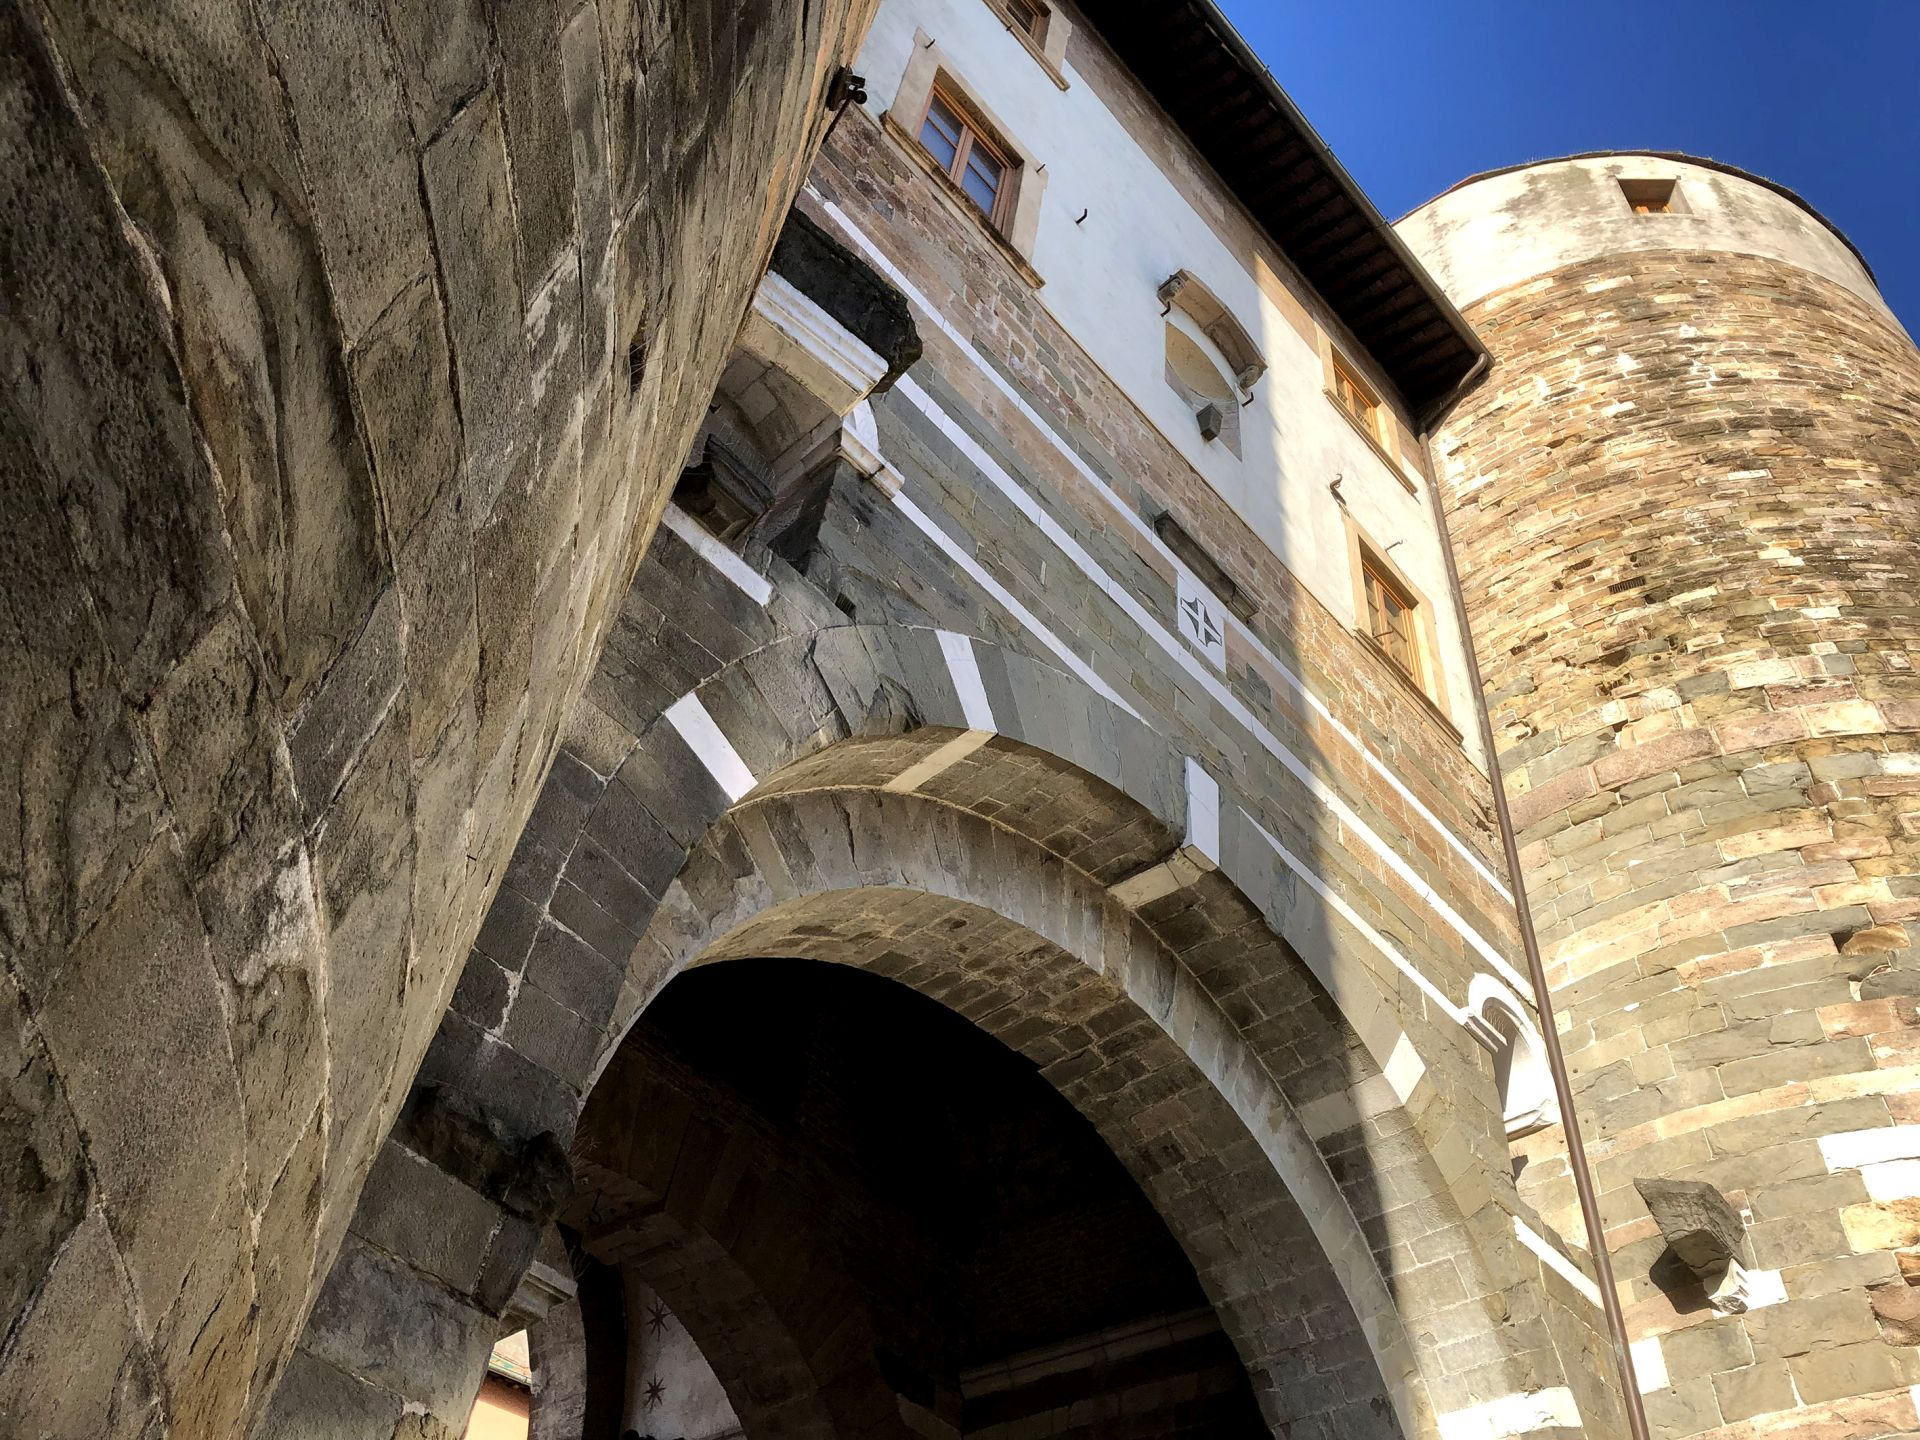 Porta San Gervasio and the medieval walls